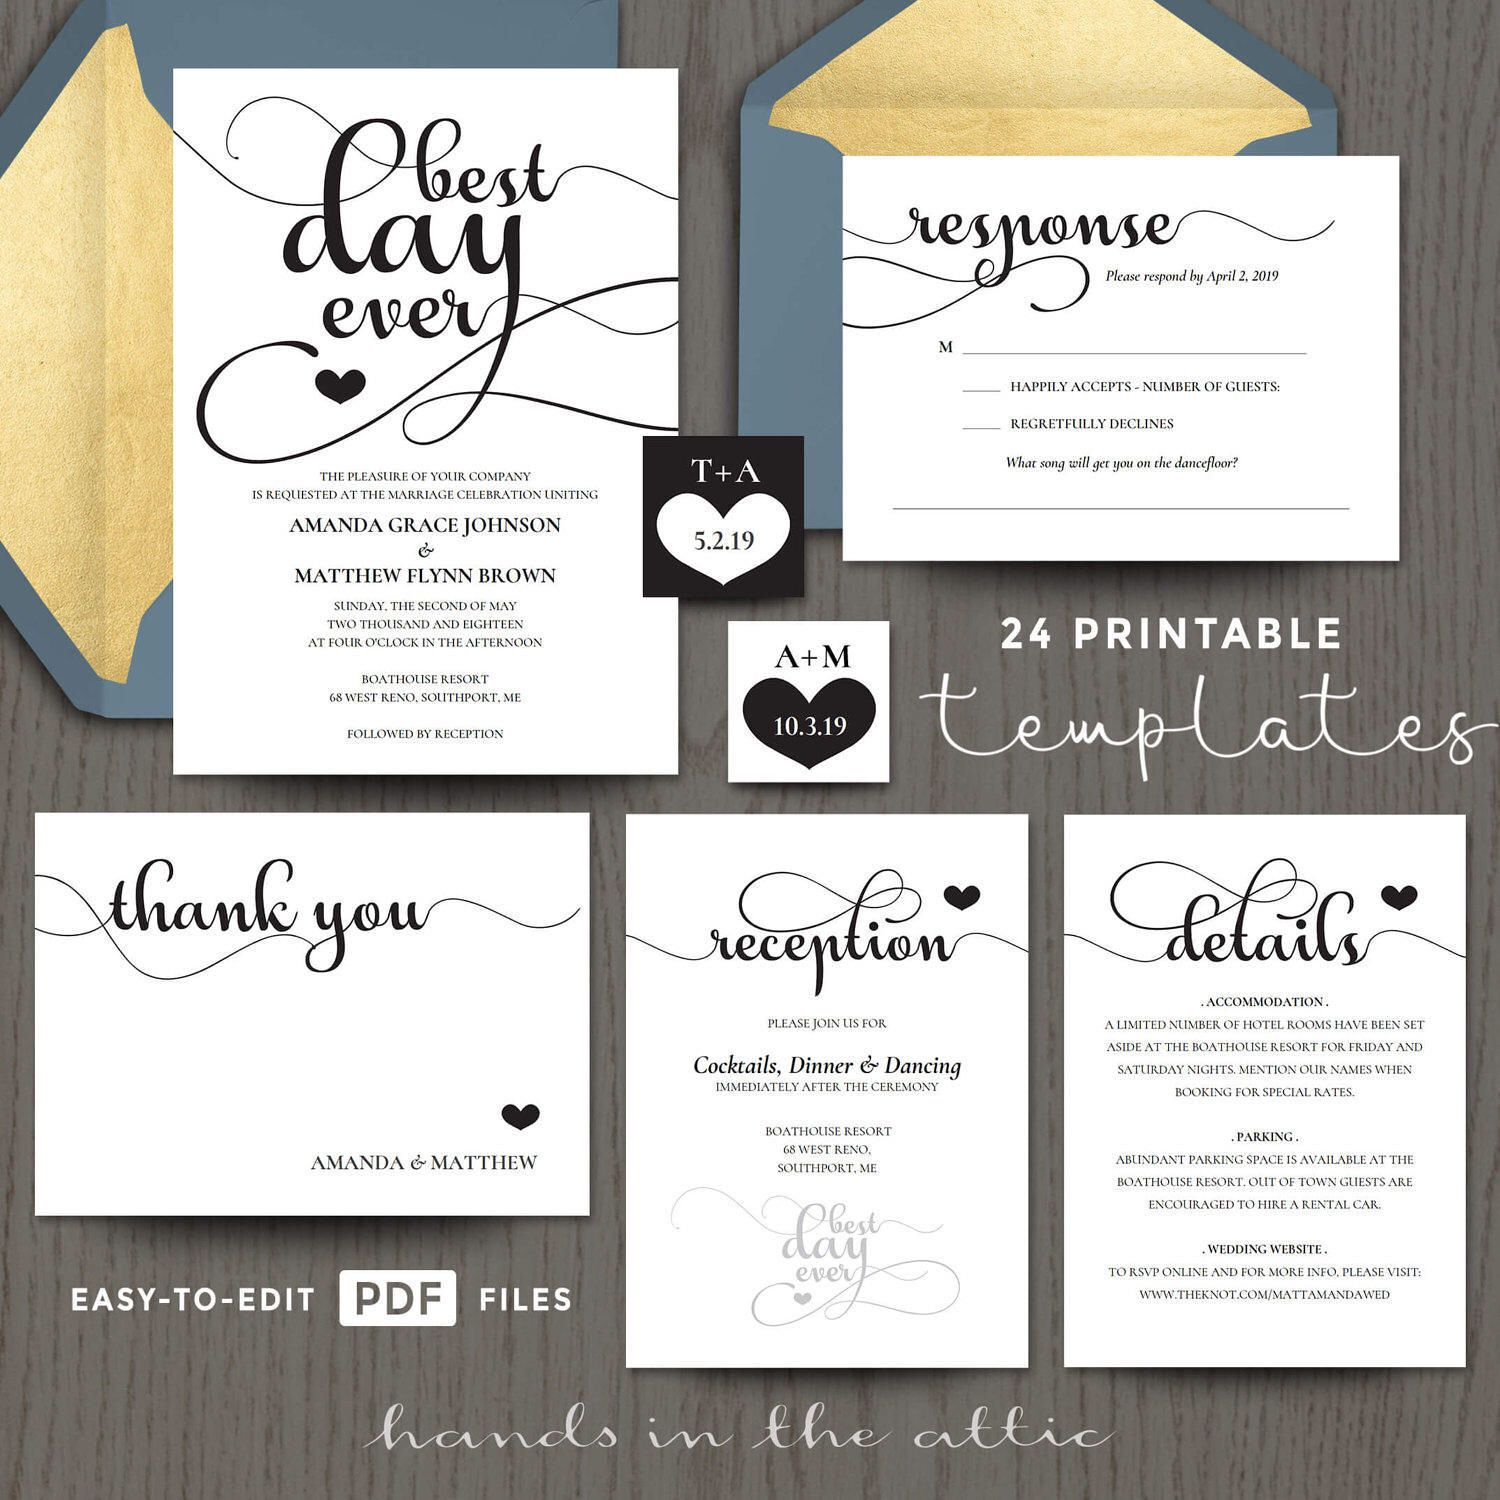 Wedding invitation templates, best day ever, full suite set ...